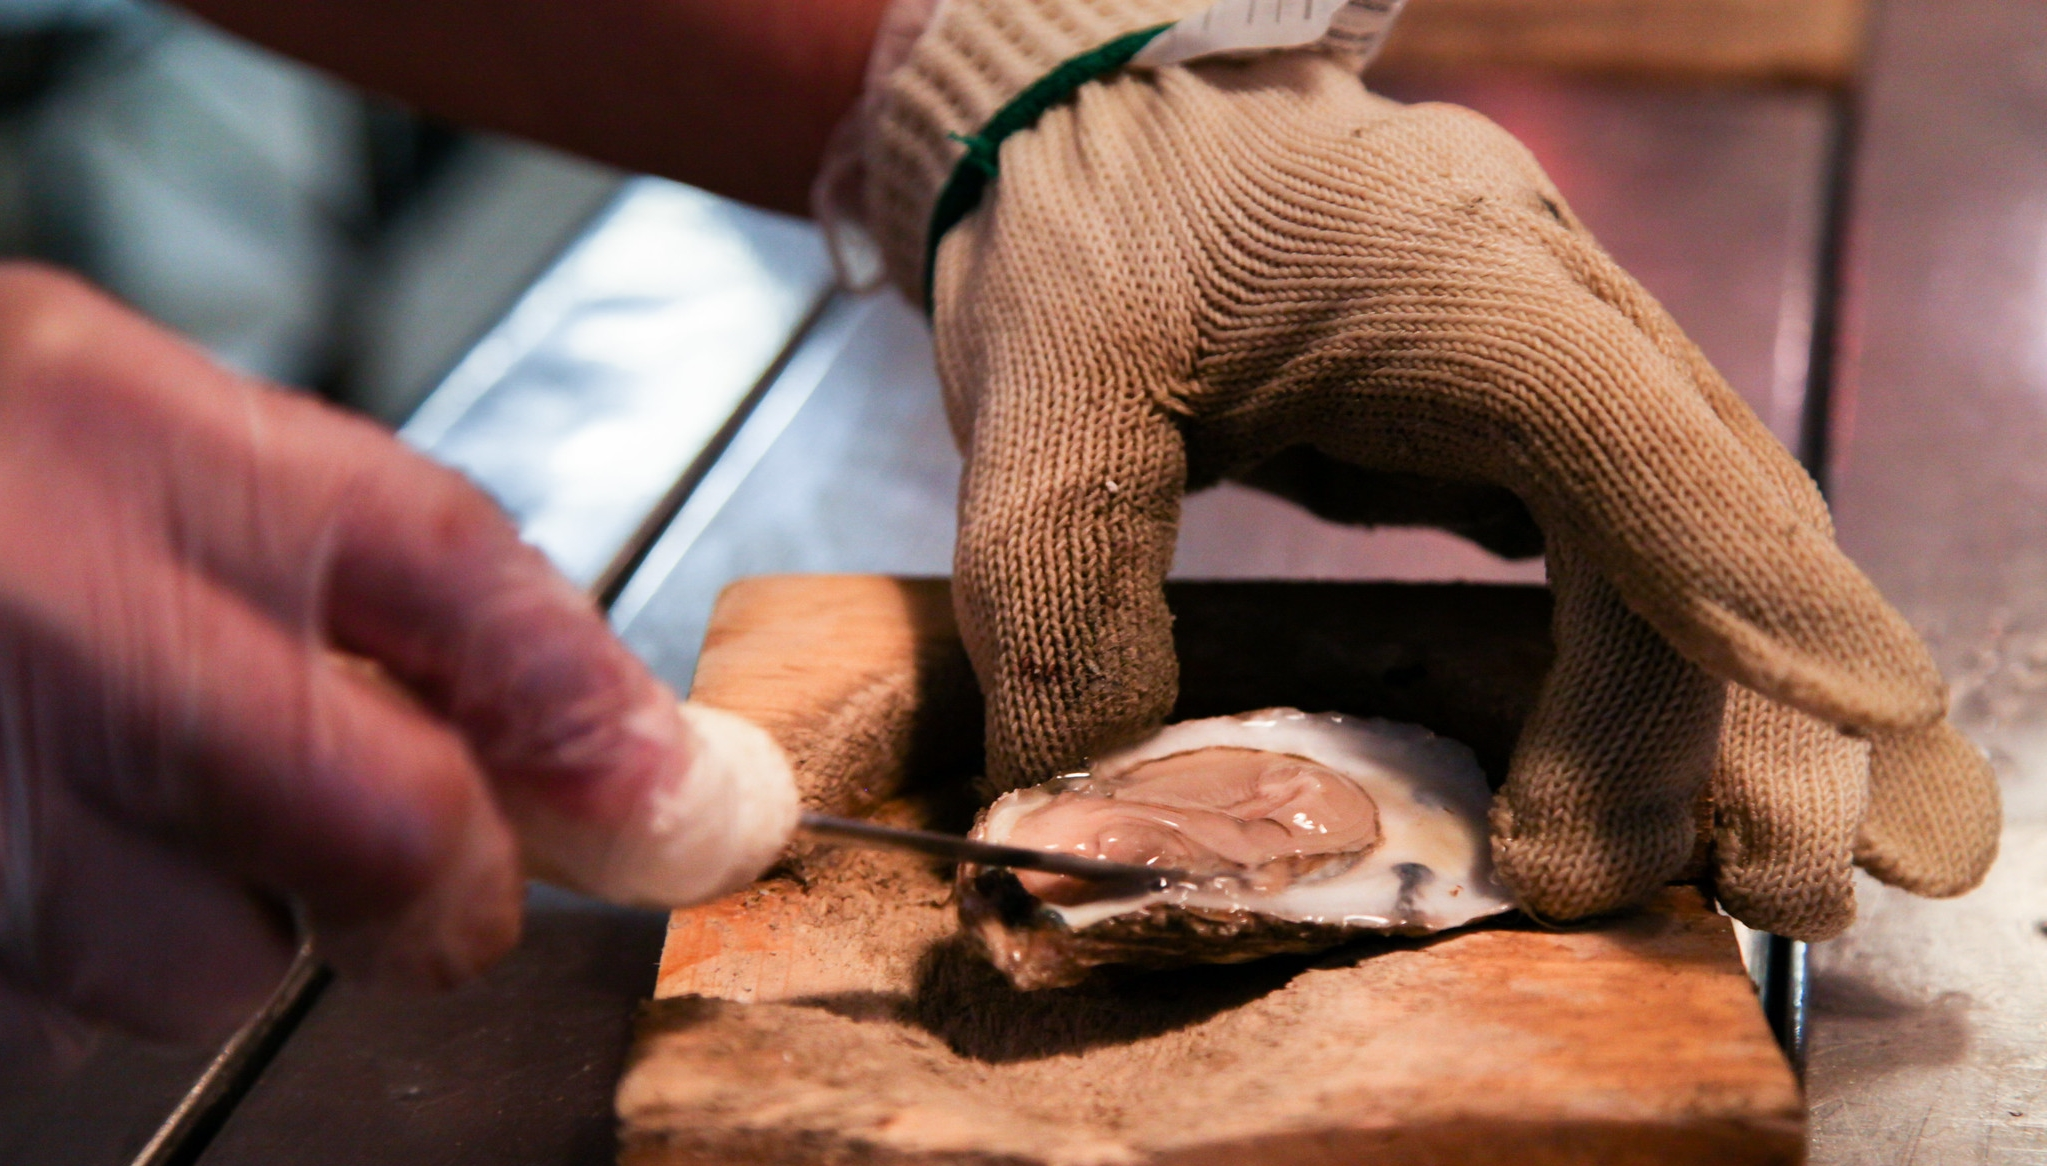 Oysters are shucked at Boatyard Bar and Grill, a restaurant in Annapolis, Md., on Jan. 24, 2013. The restaurant saves its shucked oysters shells for the Shell Recycling Alliance, which has generated 1,000 tons of shell that are sent to an oyster hatchery to be cured, power-washed and used as host material for oyster larvae. (Photo by Steve Droter/Chesapeake Bay Program)